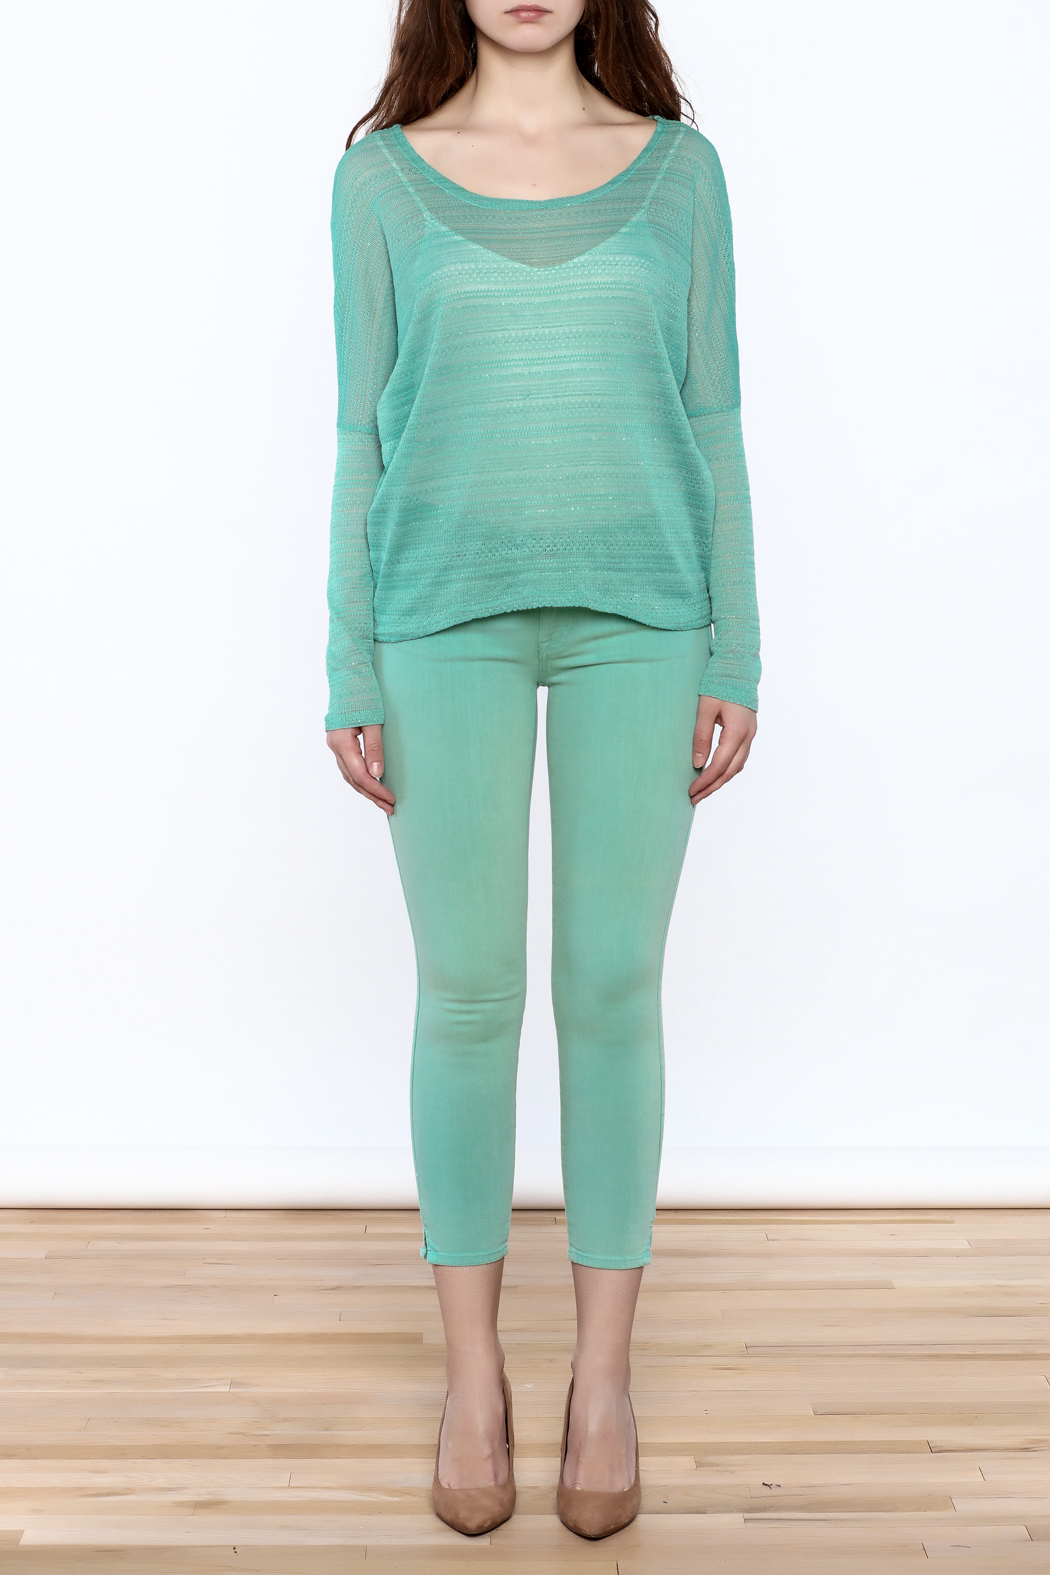 Elise Mint Green Knit Top - Front Full Image